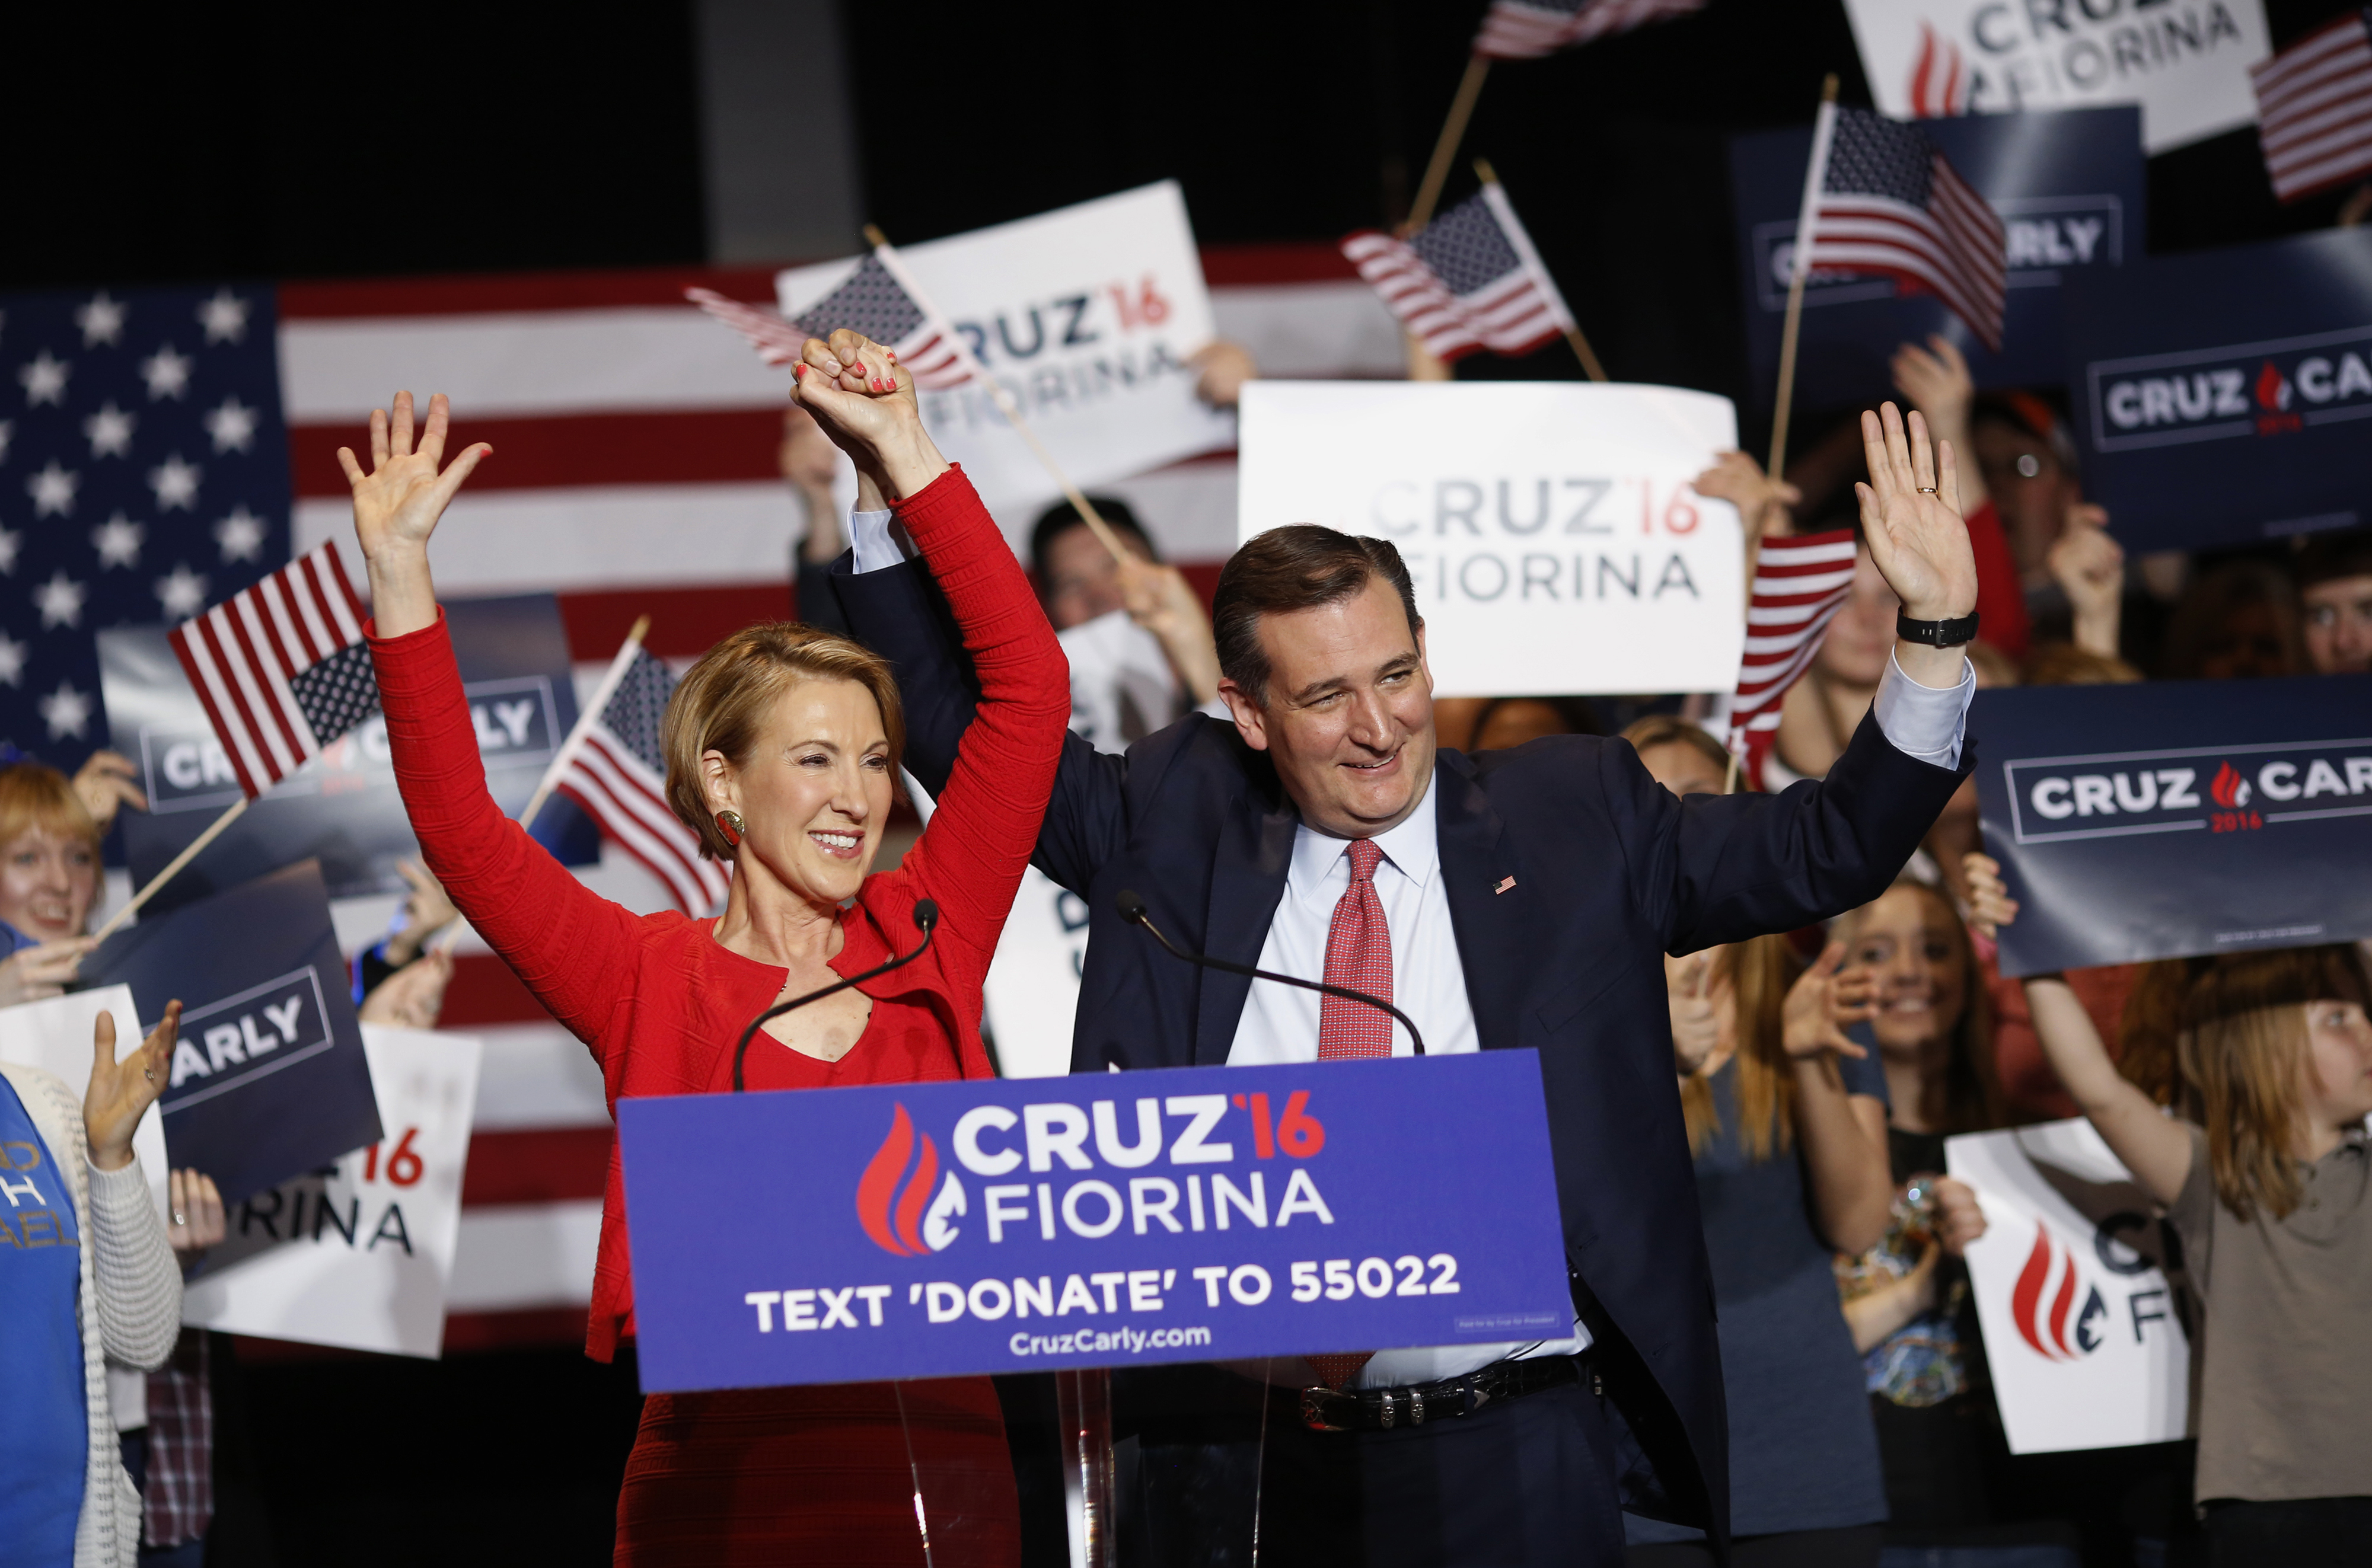 Carly Fiorina, former chairman and chief executive officer of Hewlett-Packard Co., left, and Senator Ted Cruz, a Republican from Texas and 2016 presidential candidate, waves to attendees during a campaign rally in Indianapolis on April 27, 2016.